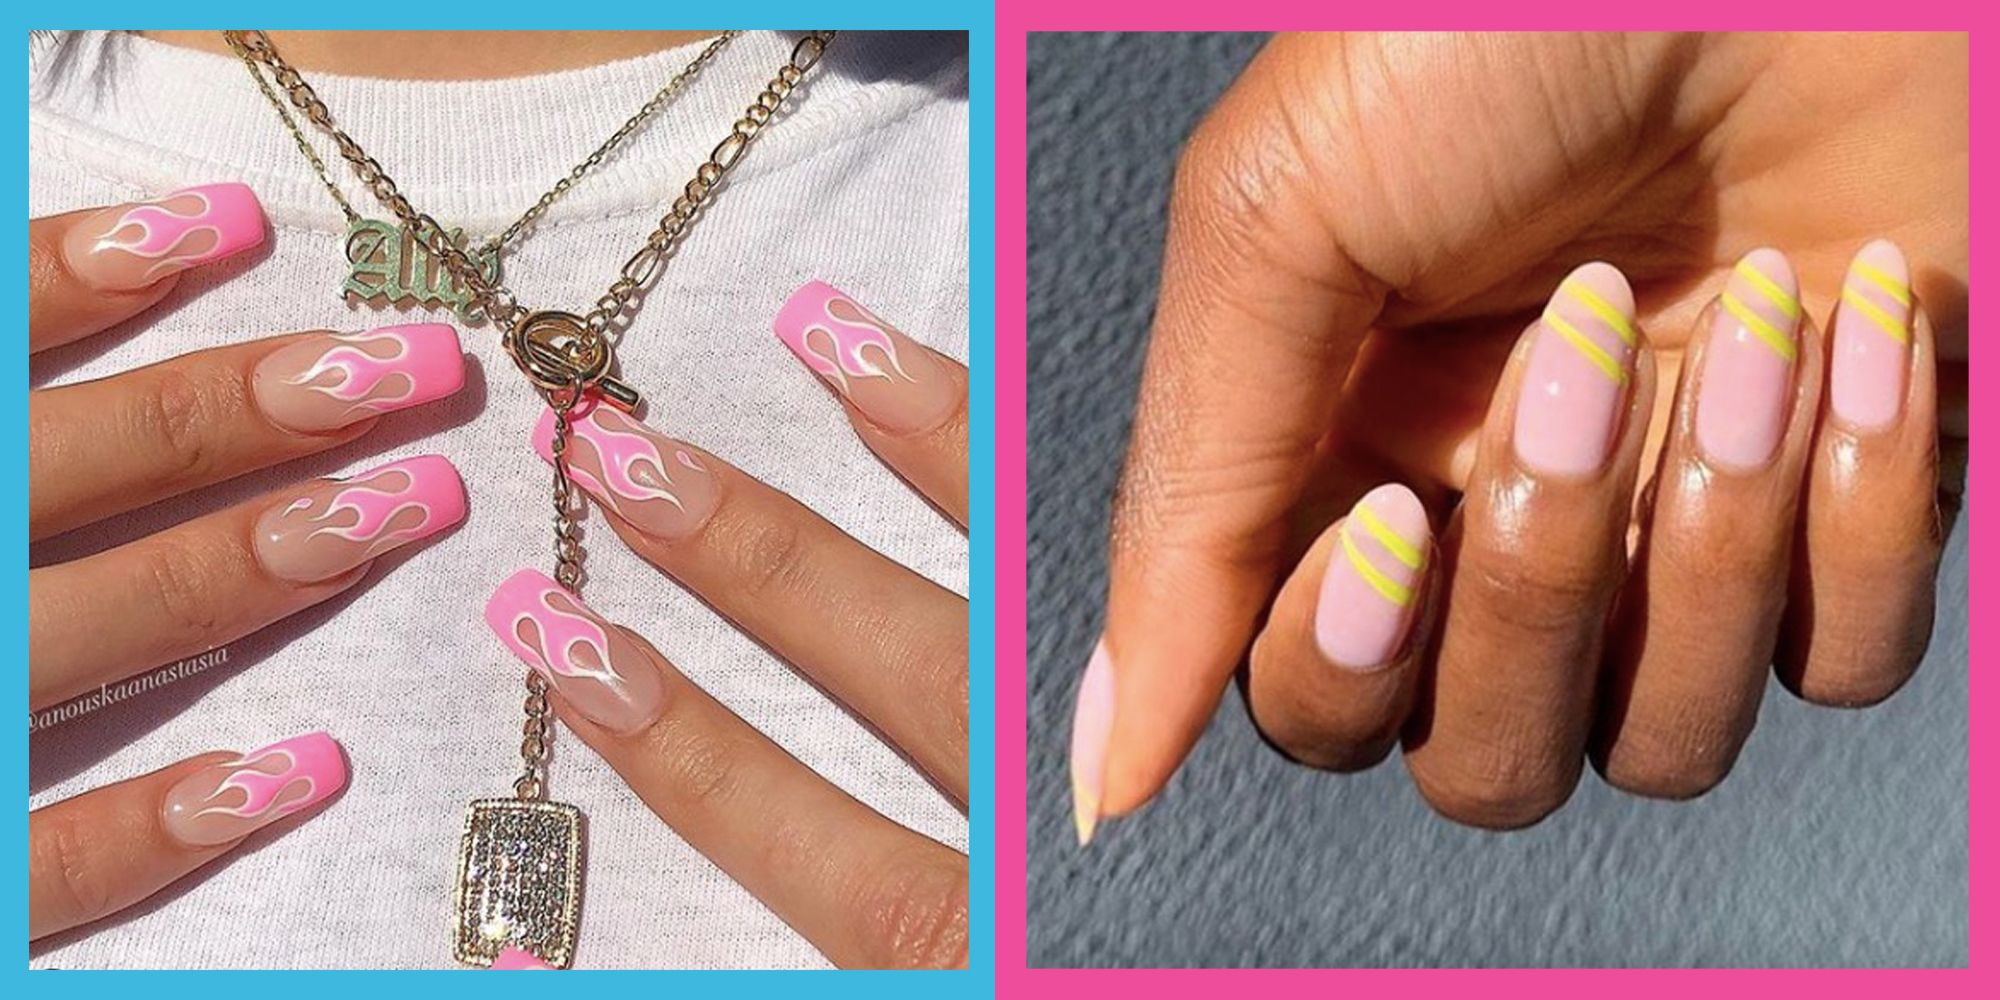 35 Of The Best Pink Nail Art Designs On Instagram 2020